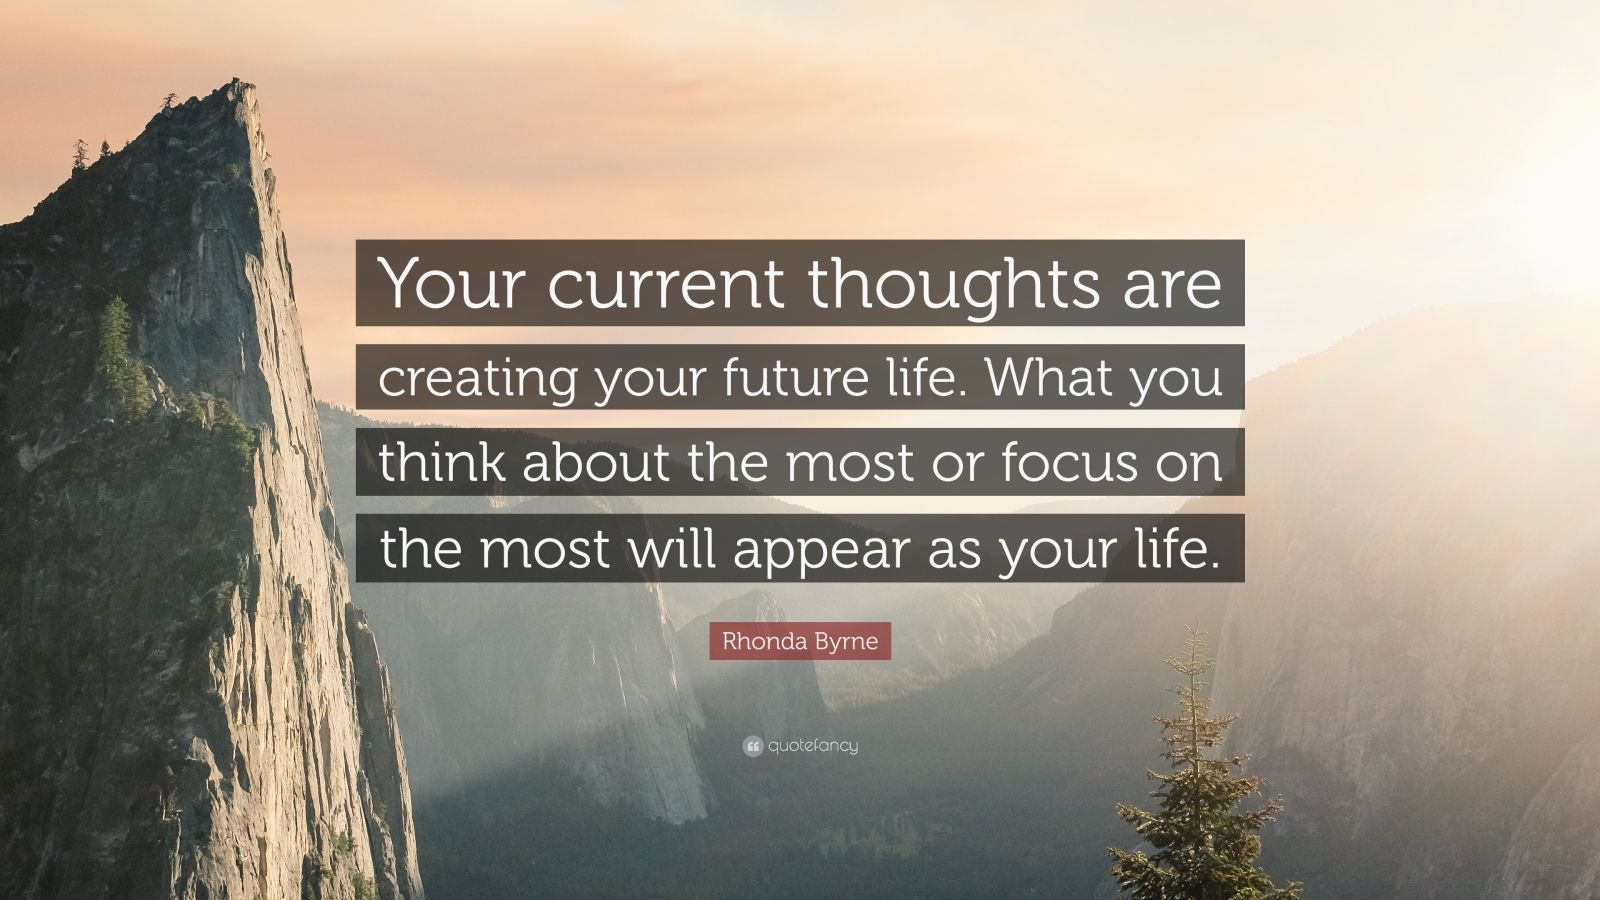 """Rhonda Byrne Quote: """"Your current thoughts are creating your future life. What you think about the most or focus on the most will appear as your life."""""""